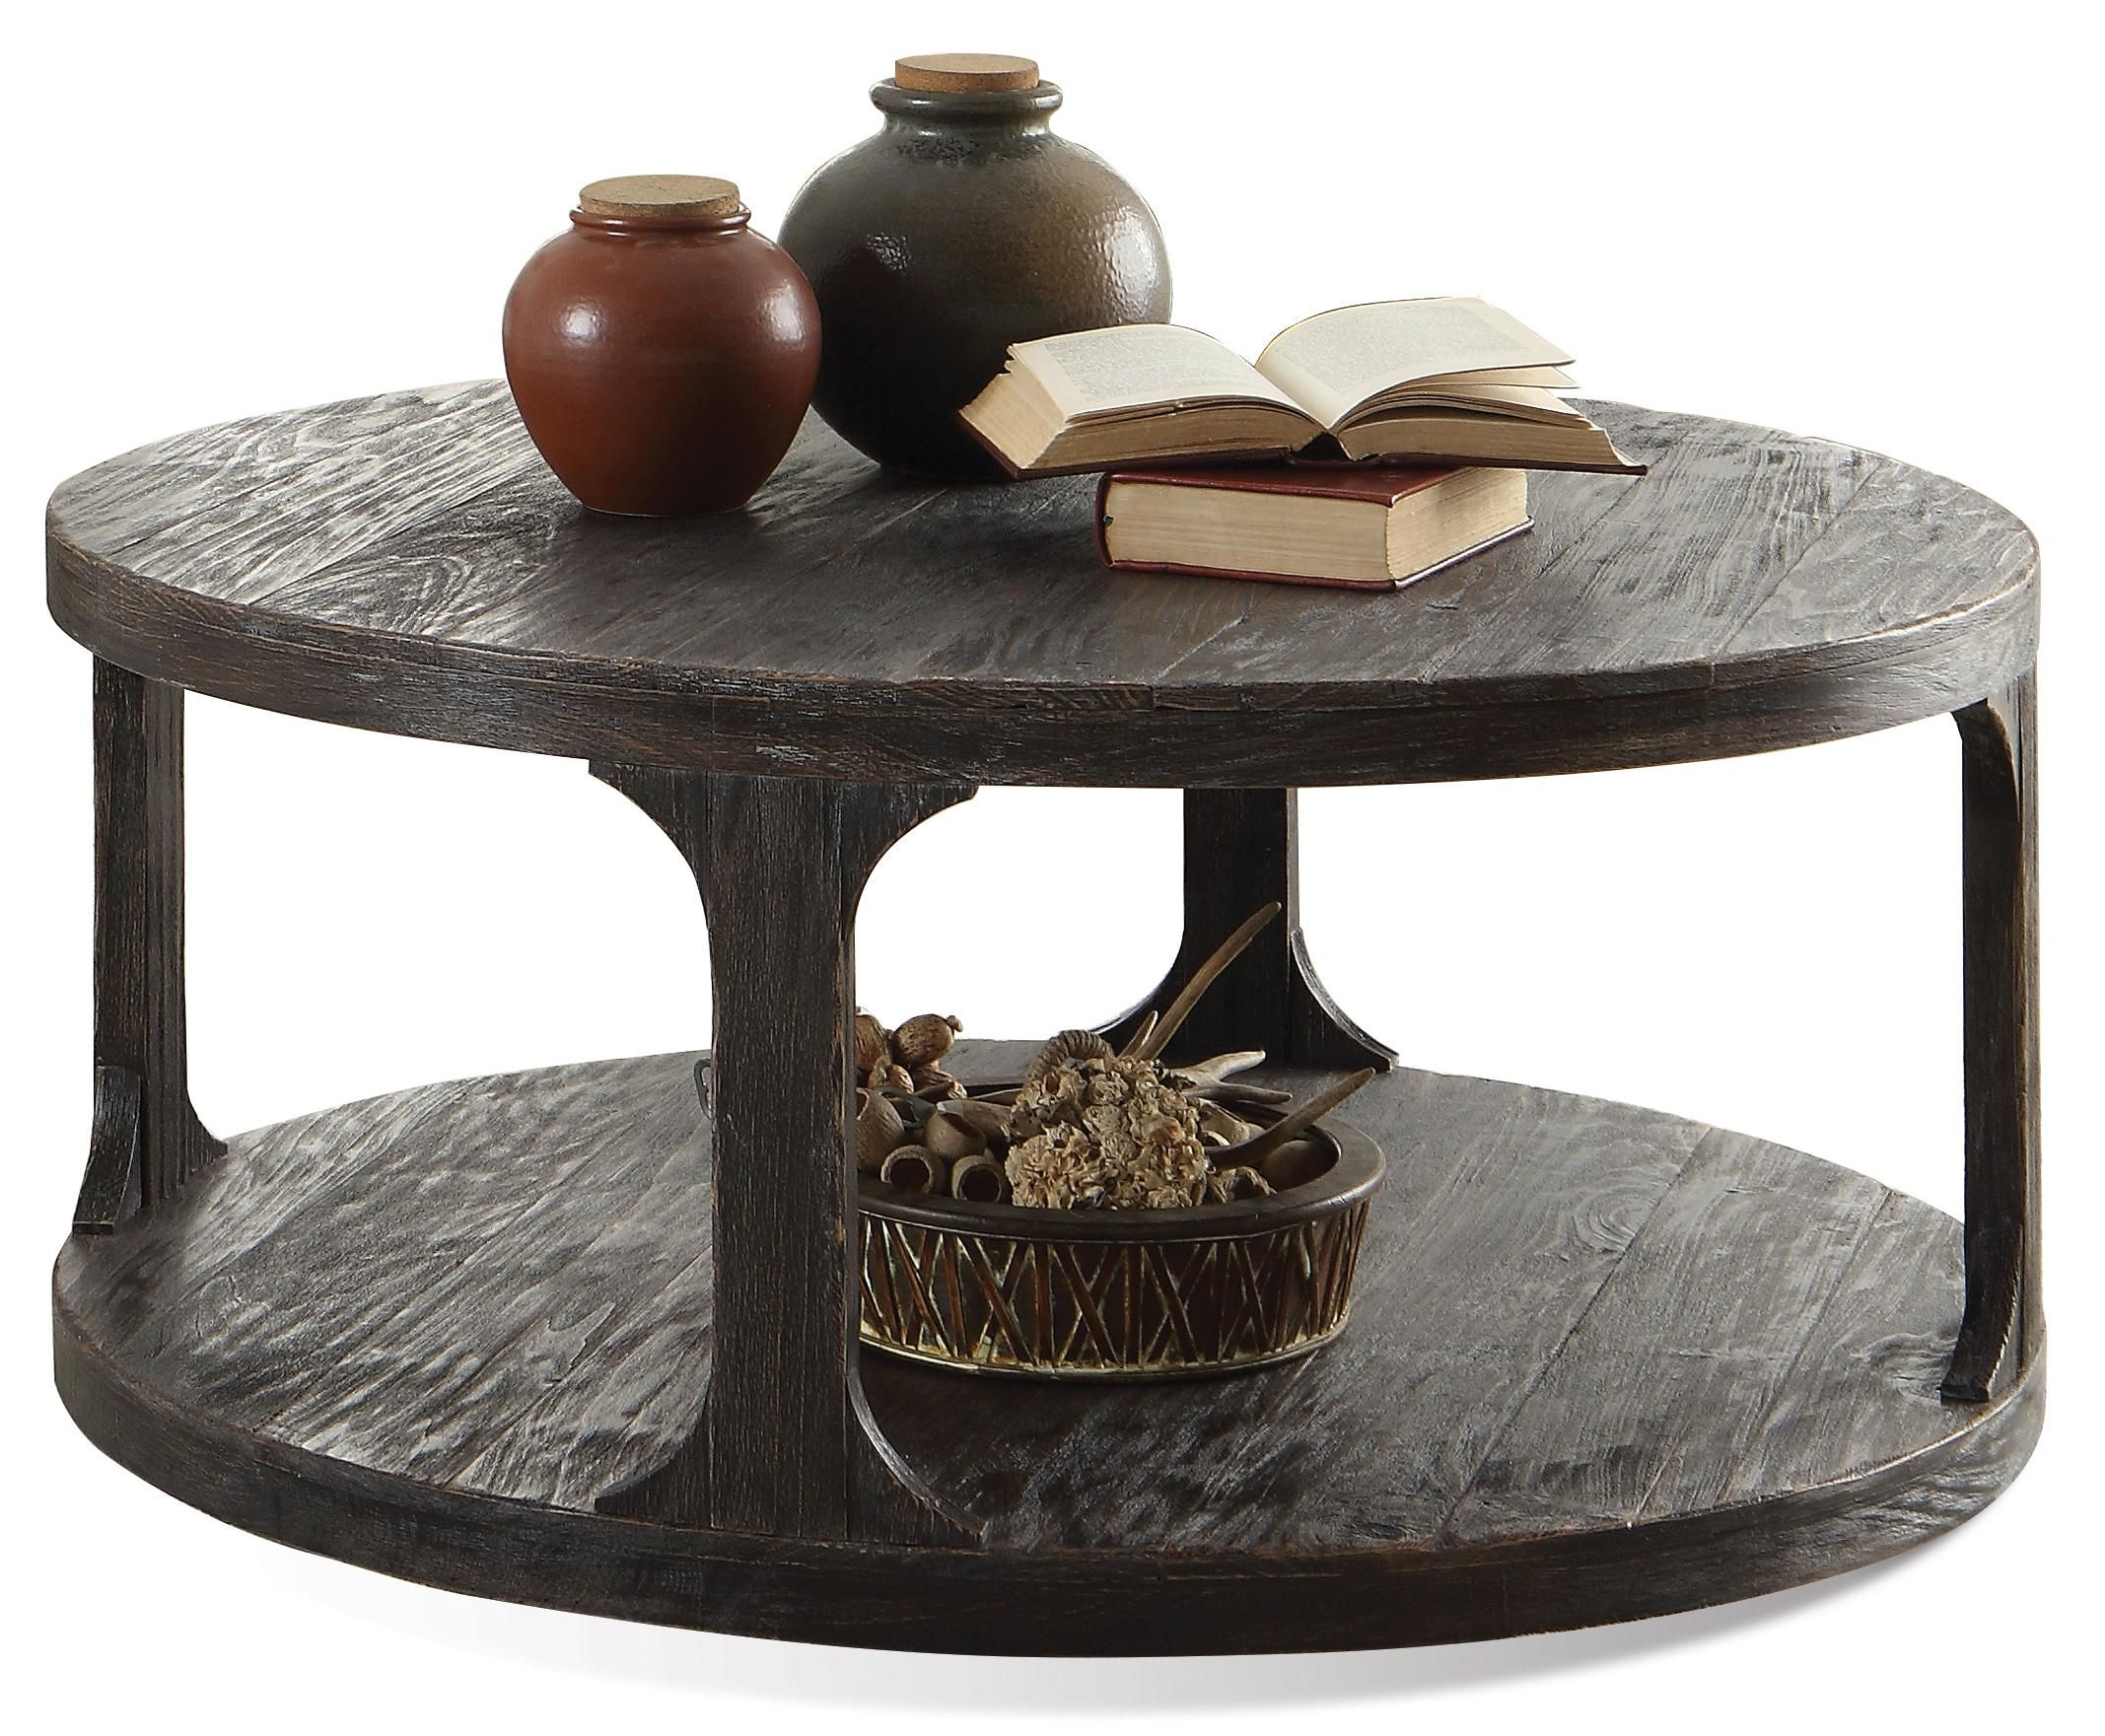 Bellagio Round Cocktail Table W Shelf By Riverside Furniture At Belfort Furniture Coffee Table Farmhouse Circular Coffee Table Home Coffee Tables [ 1761 x 2135 Pixel ]